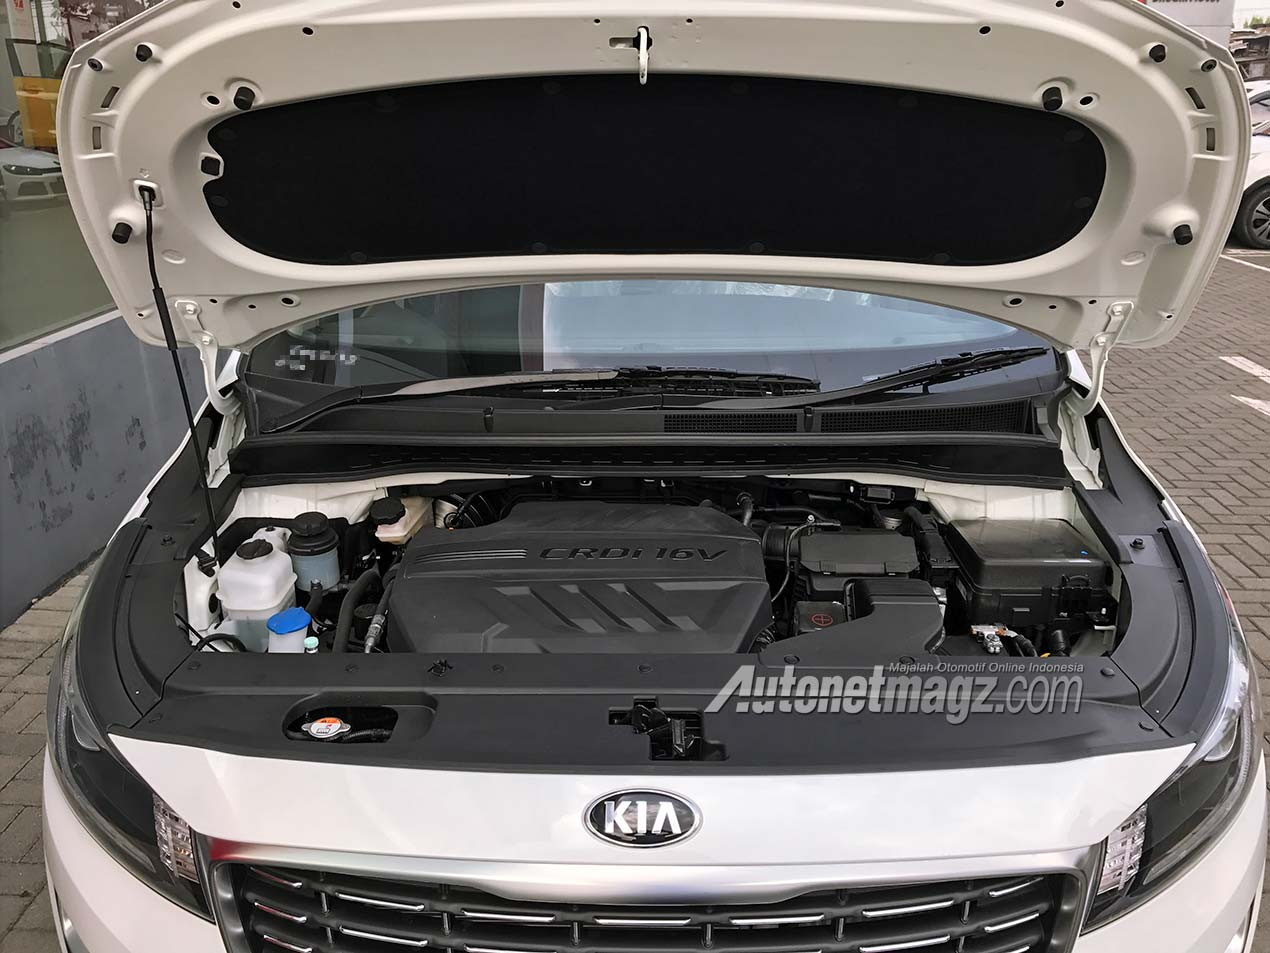 International, KIA-Grand-Sedona-CRDi-2.200-cc-turbo-diesel-Indonesia: KIA Grand Sedona Diesel Terkuak, Rilis Resmi Sebelum GIIAS 2018!